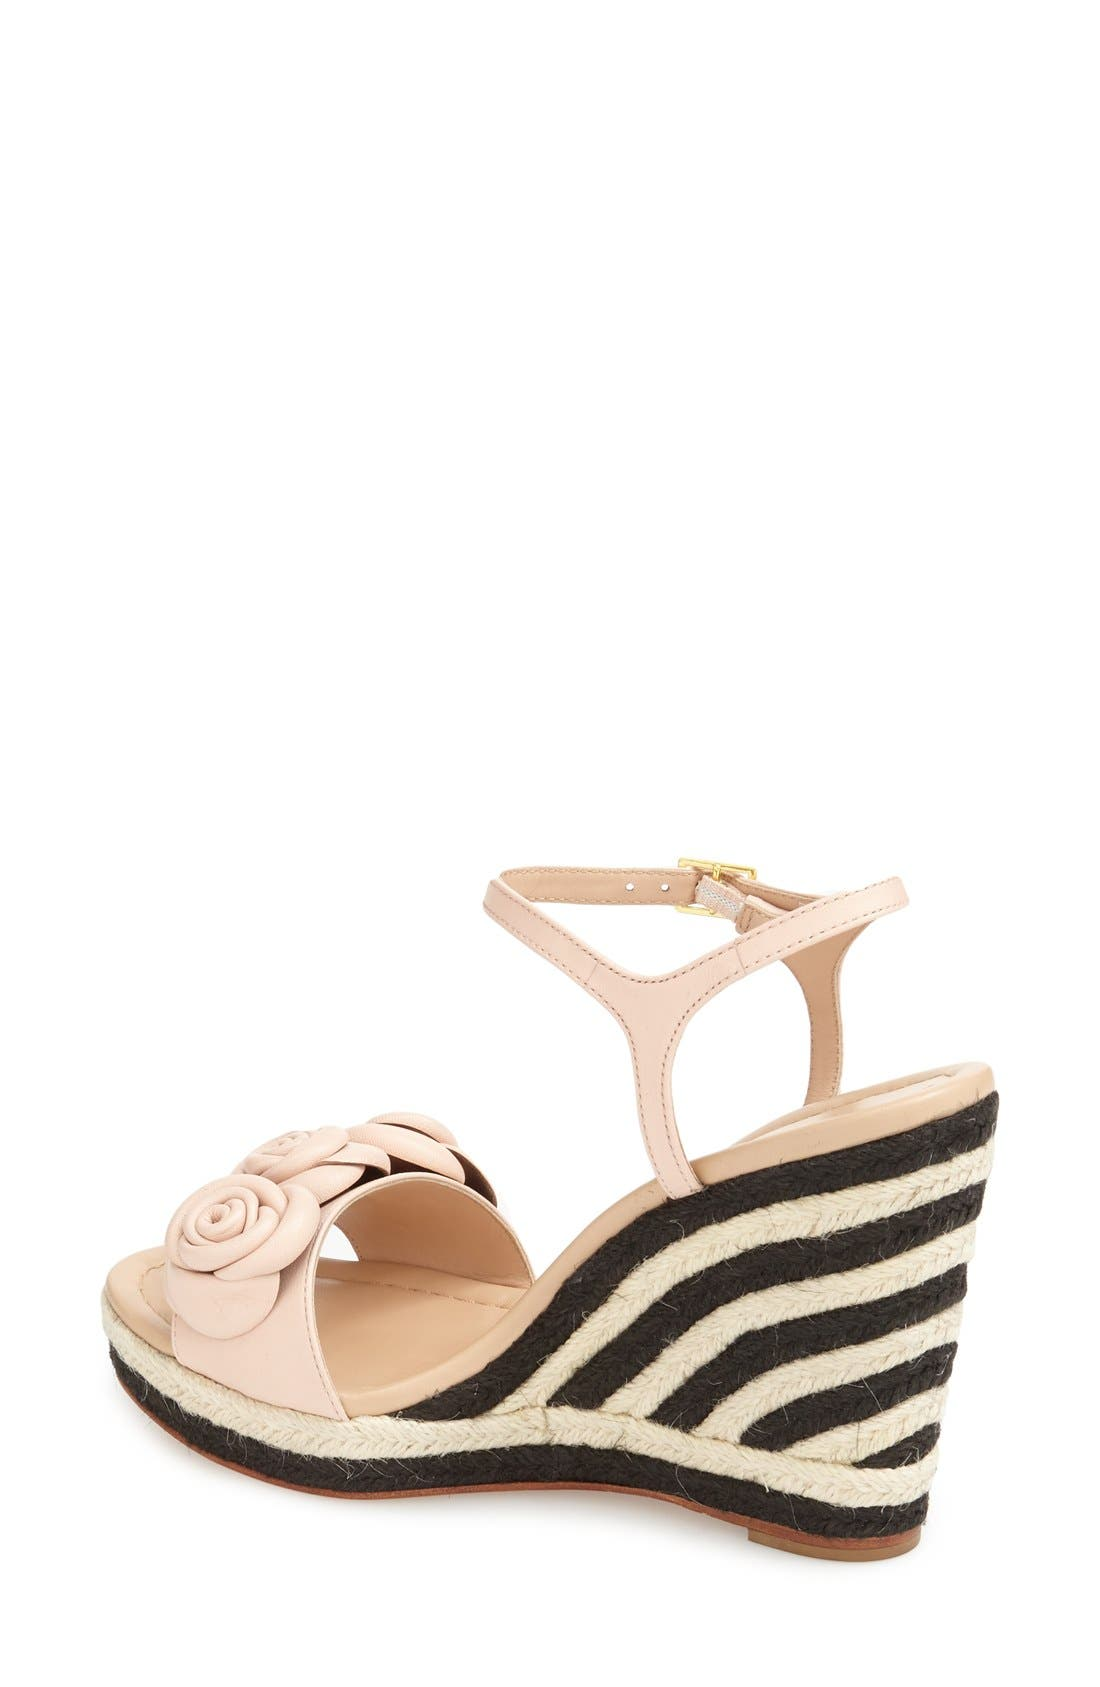 Alternate Image 2  - kate spade new york 'jill' espadrille wedge sandal (Women)